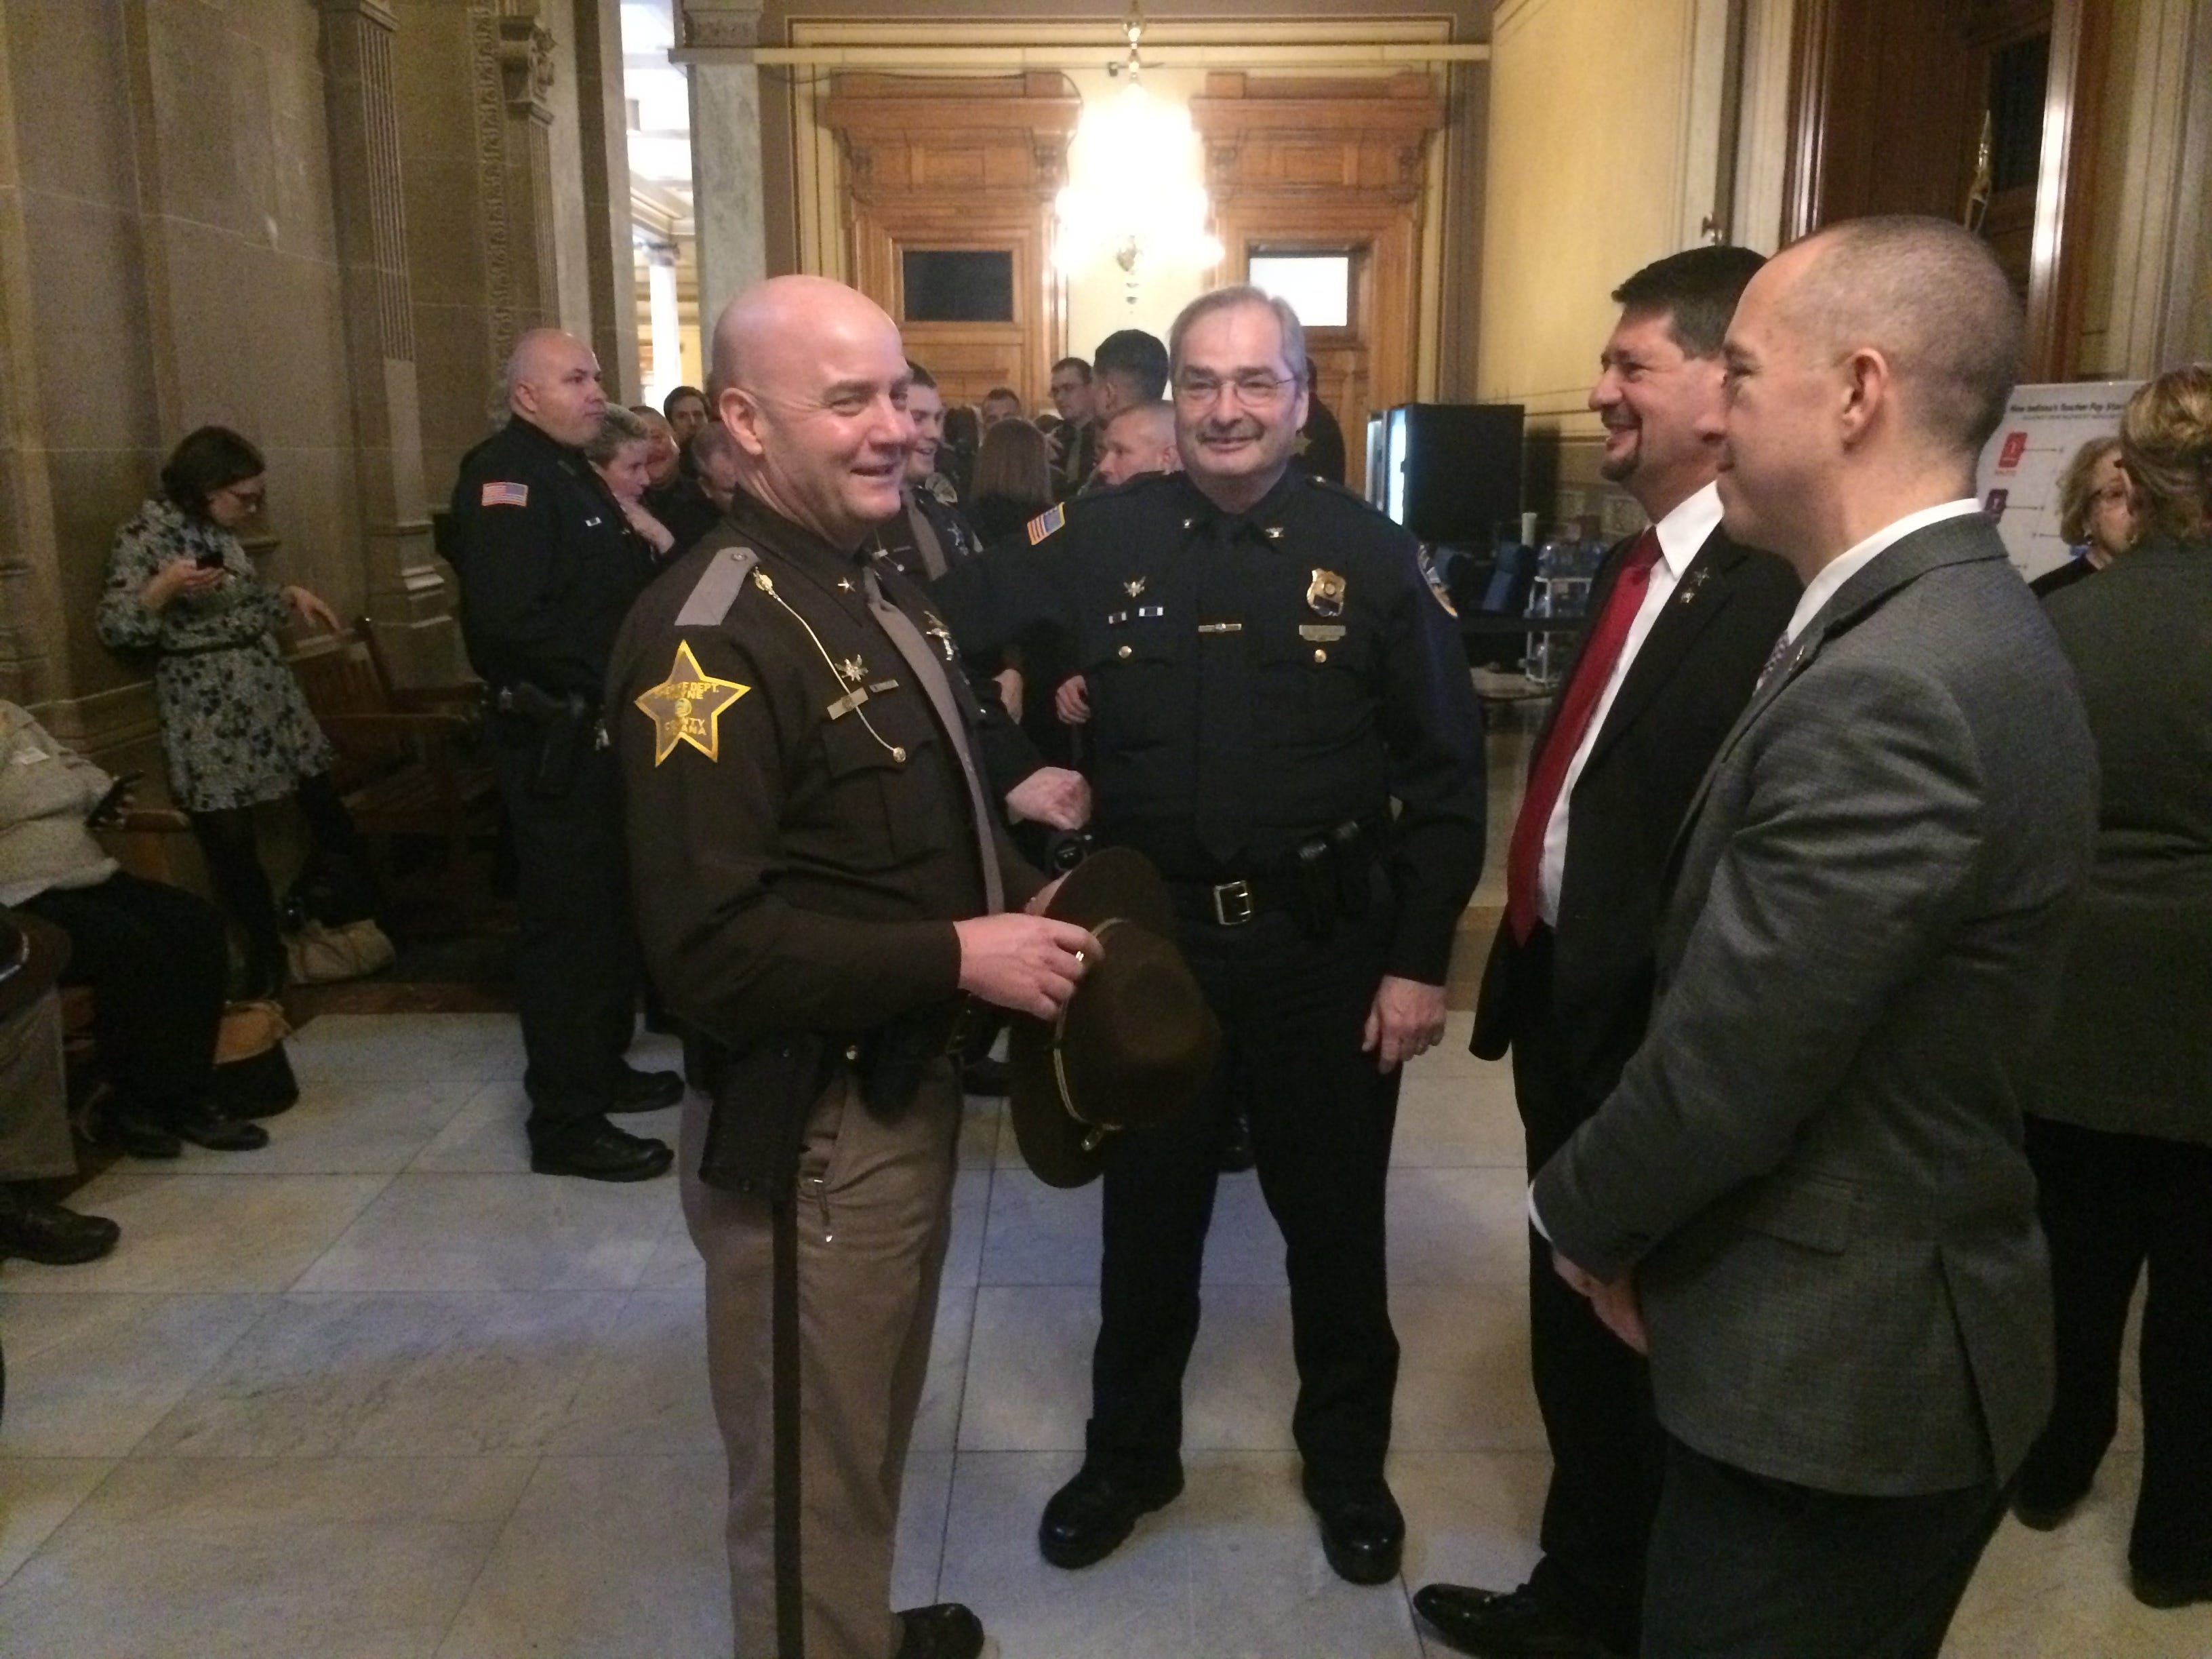 Sheriff Randy Retter, Chief Jim Branum, former Sheriff Jeff Cappa and Mayor Dave Snow wait outside the Senate chambers Tuesday.